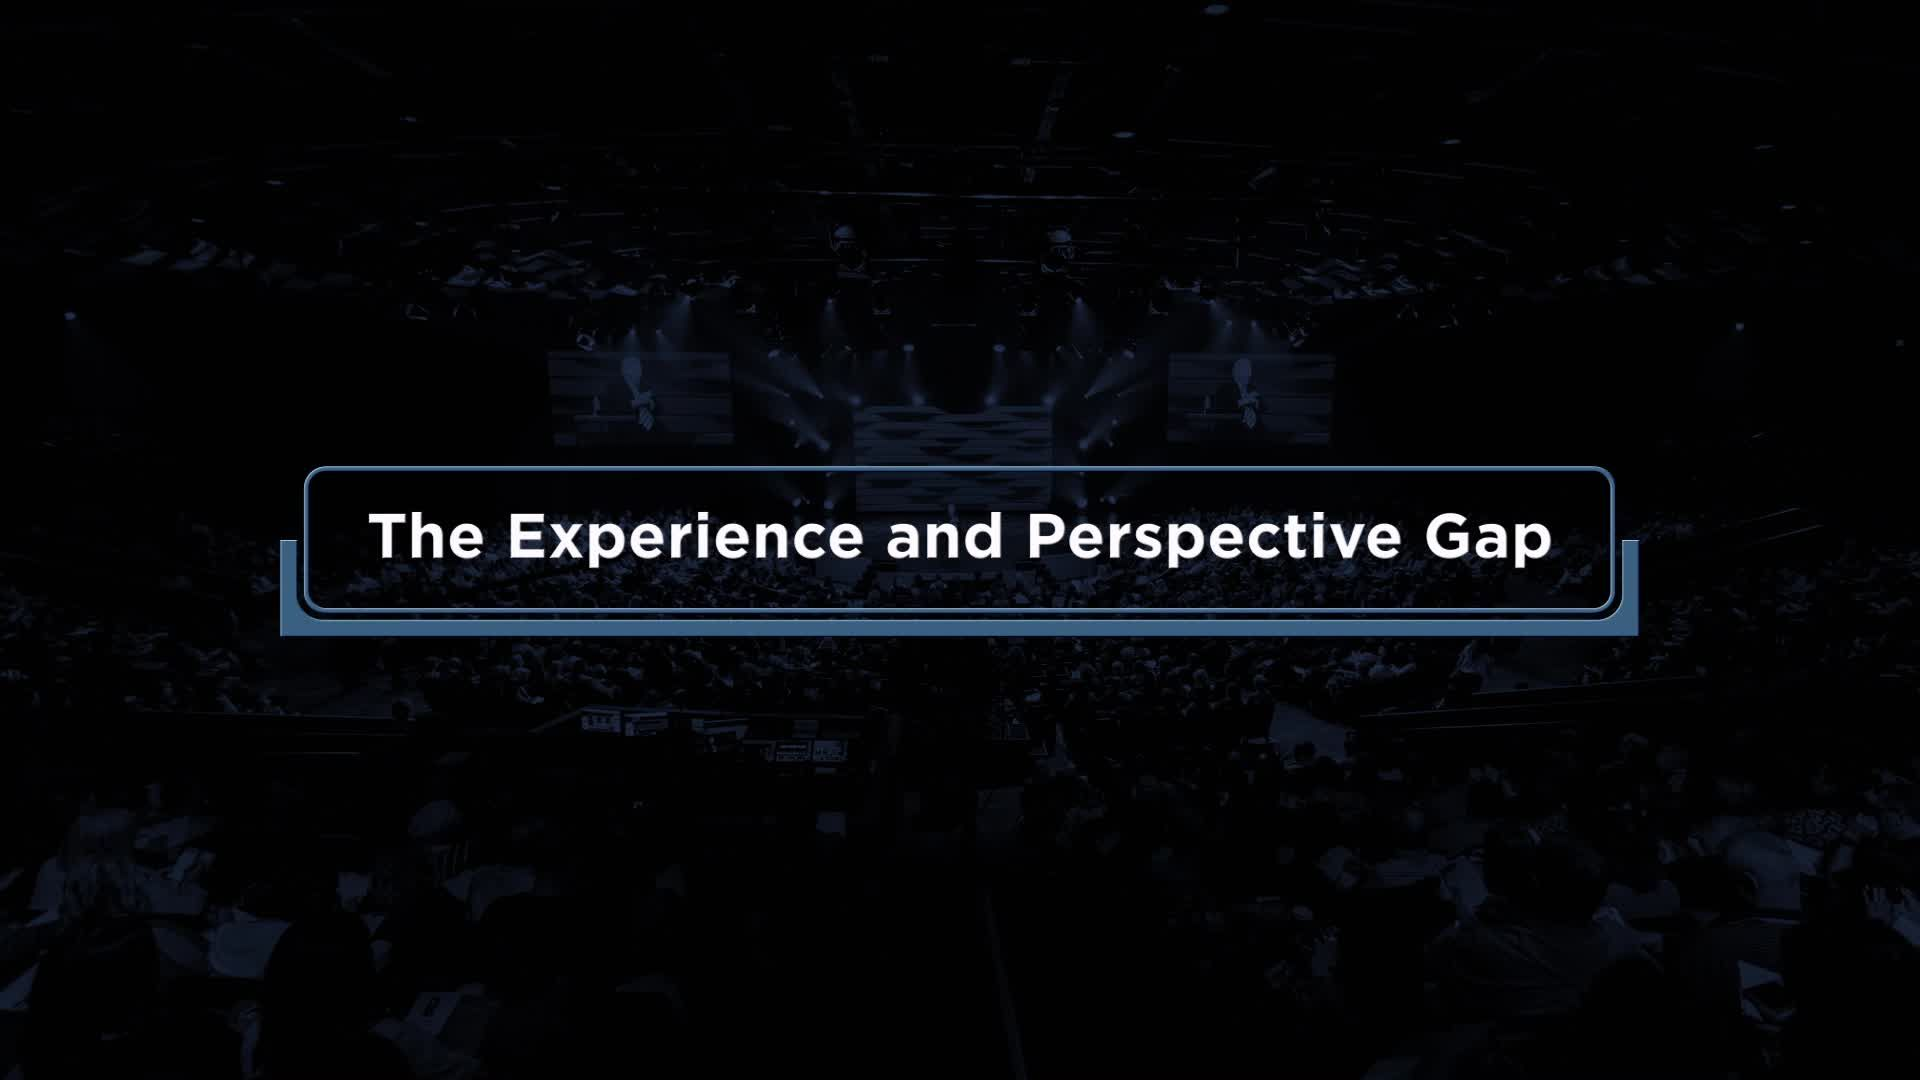 The Experience and Perspective Gap